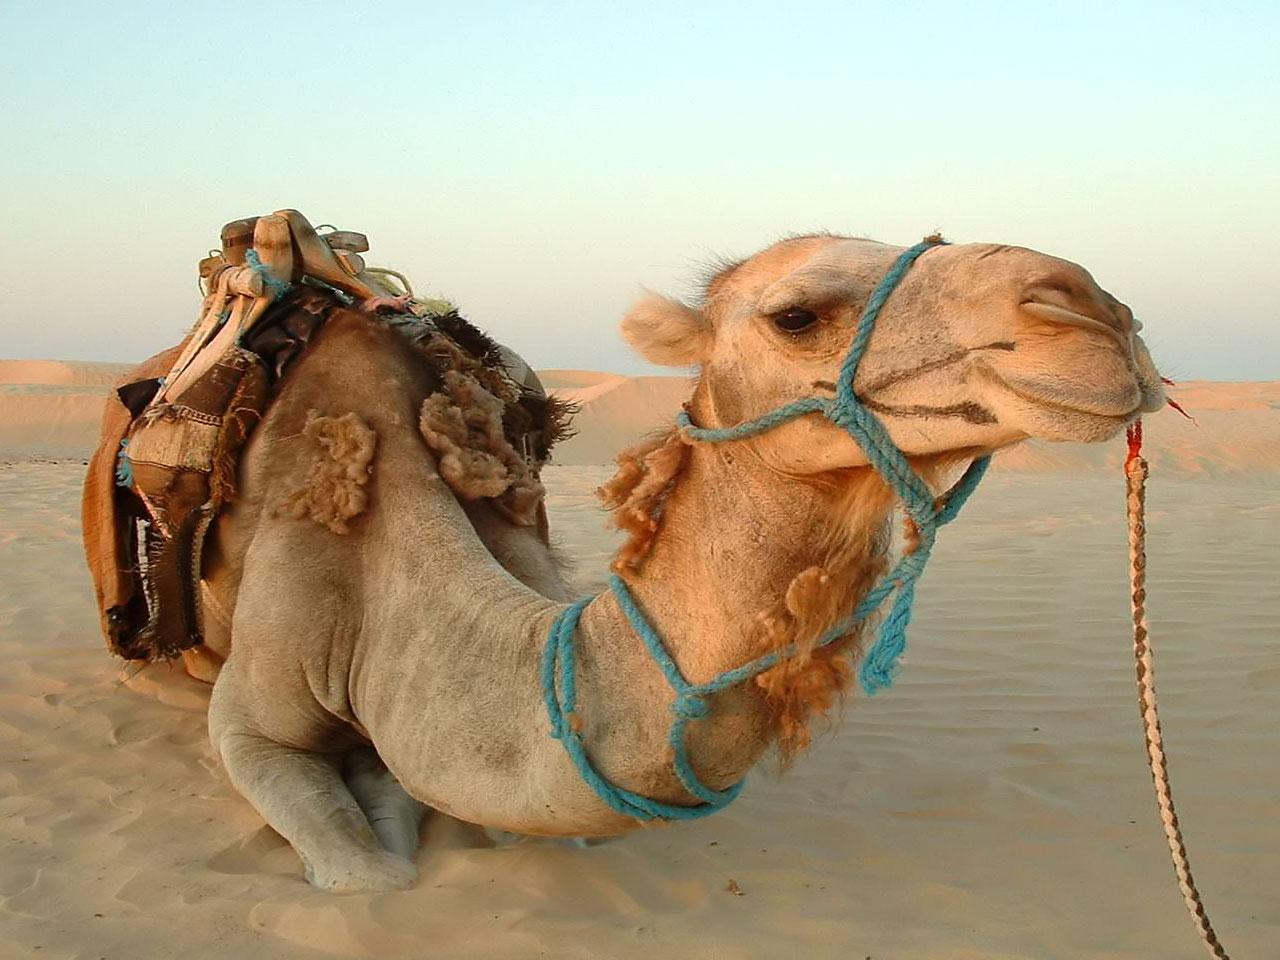 Camel Animal Photo Wallpapers